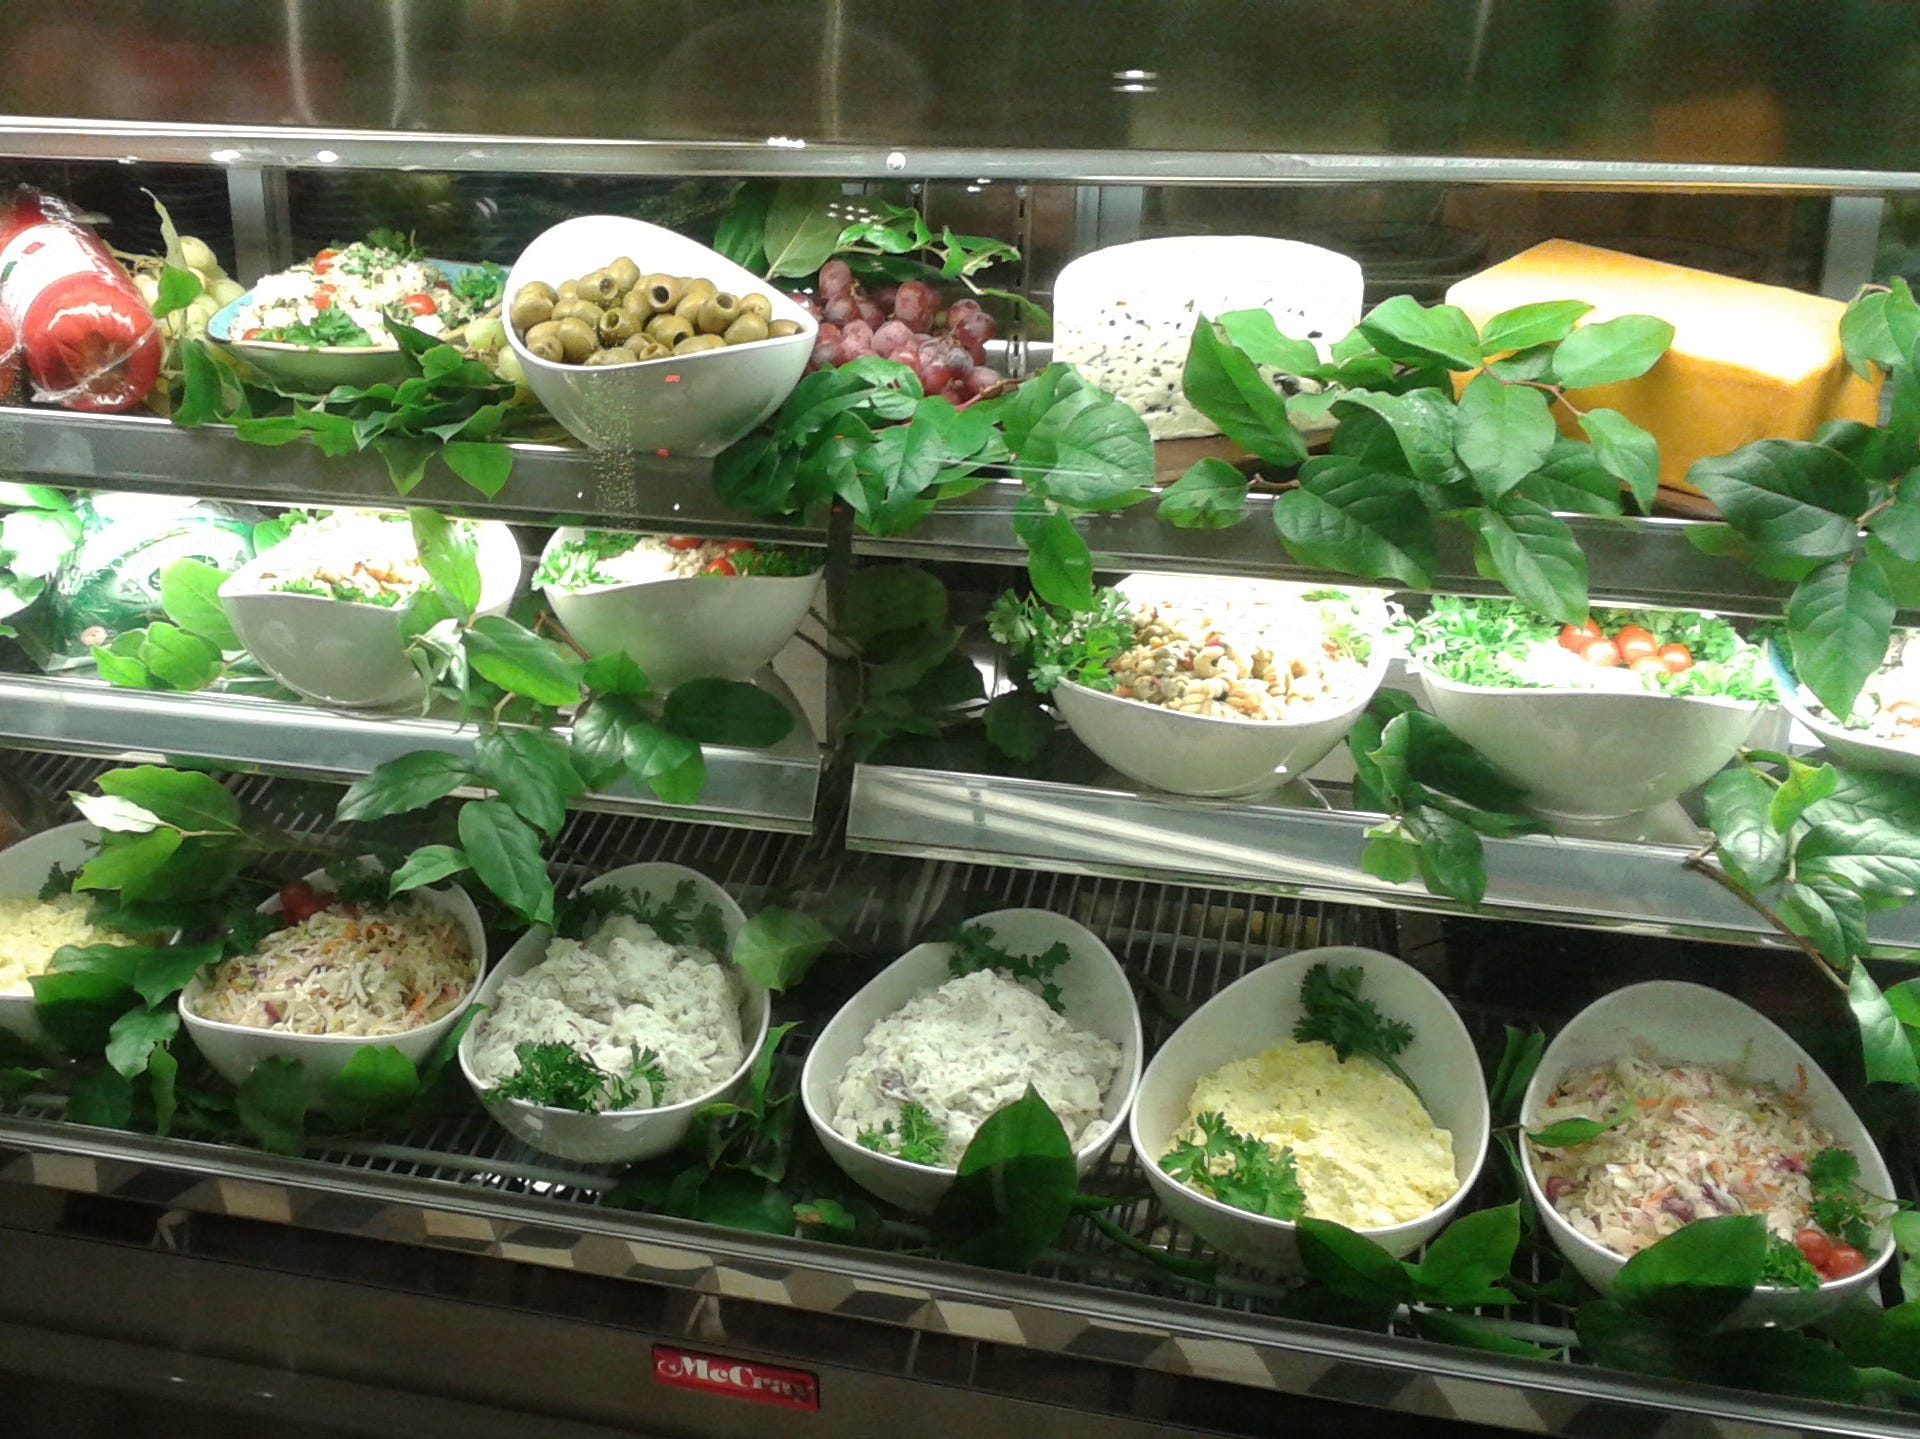 Zelman's Delicatessen will serve salads, sandwiches, soups, appetizers, and all-day breakfast.